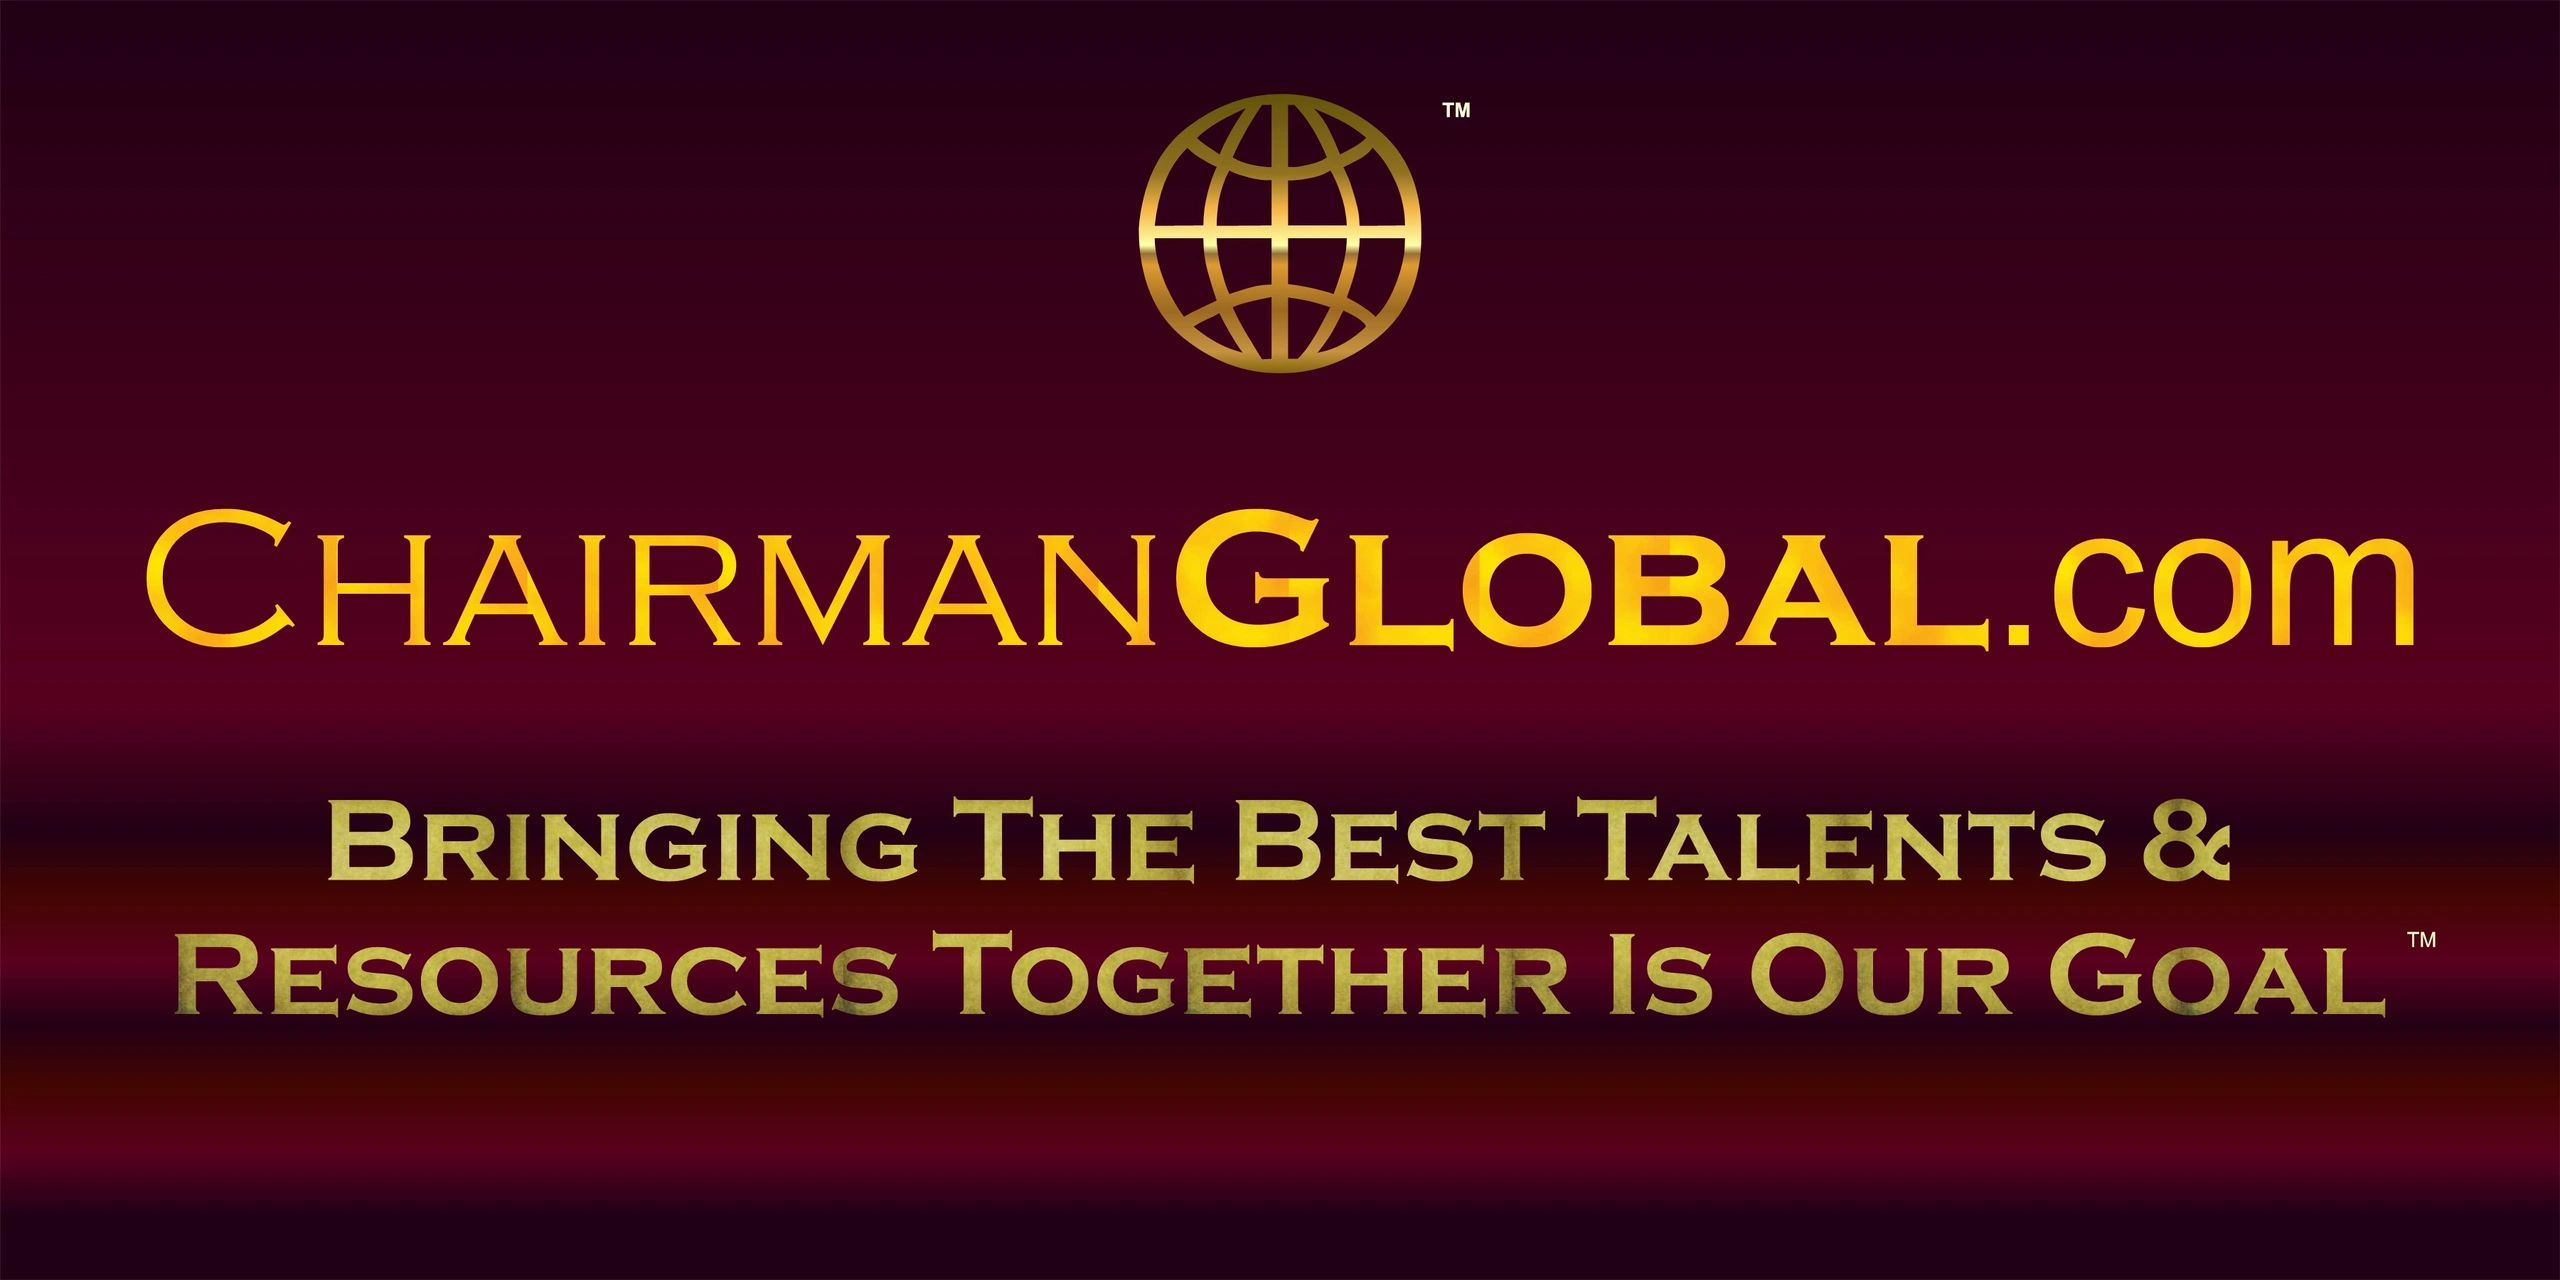 This is one of the official artwork designs for ChairmanGlobal.